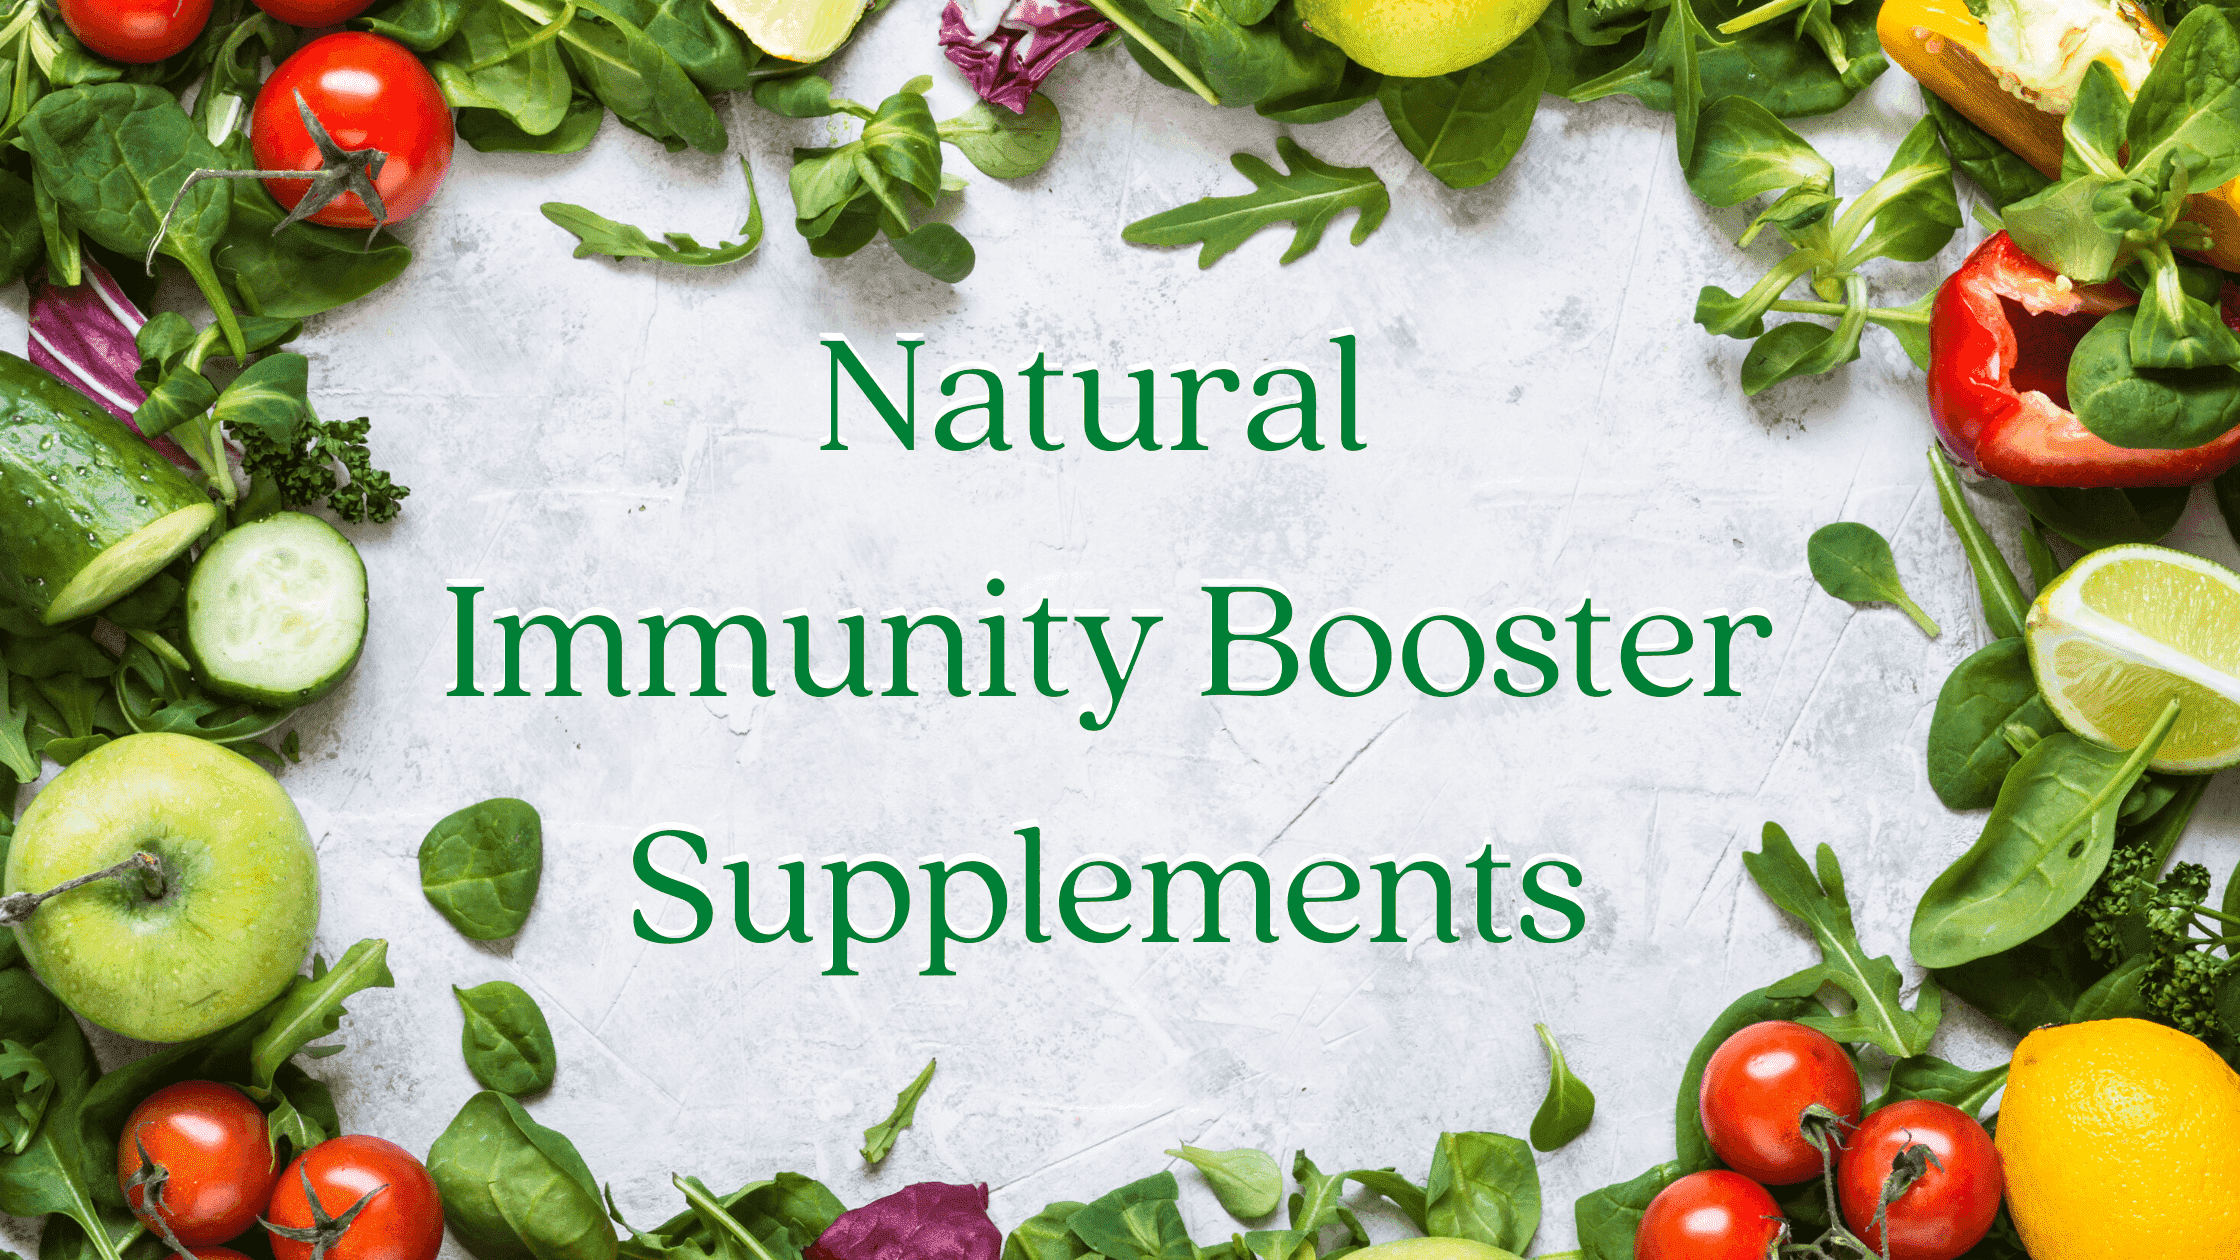 Natural Immunity Booster Supplements